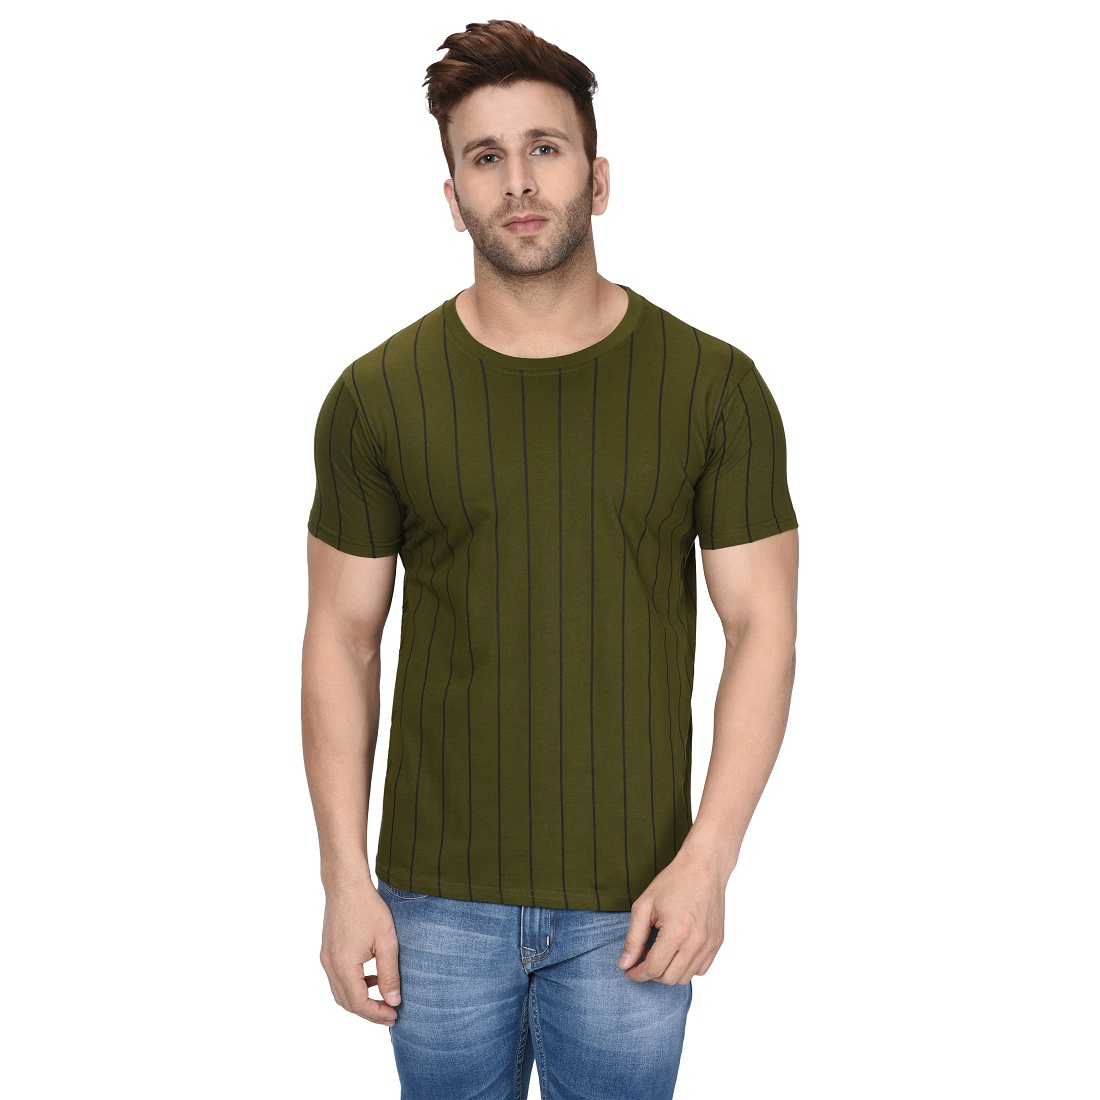 London Hills Men's 100% Pure Cotton Casual Solid Full Sleeve Round Neck Regular Fit Thin Striped Green T-Shirt (LH_T_HF_518)